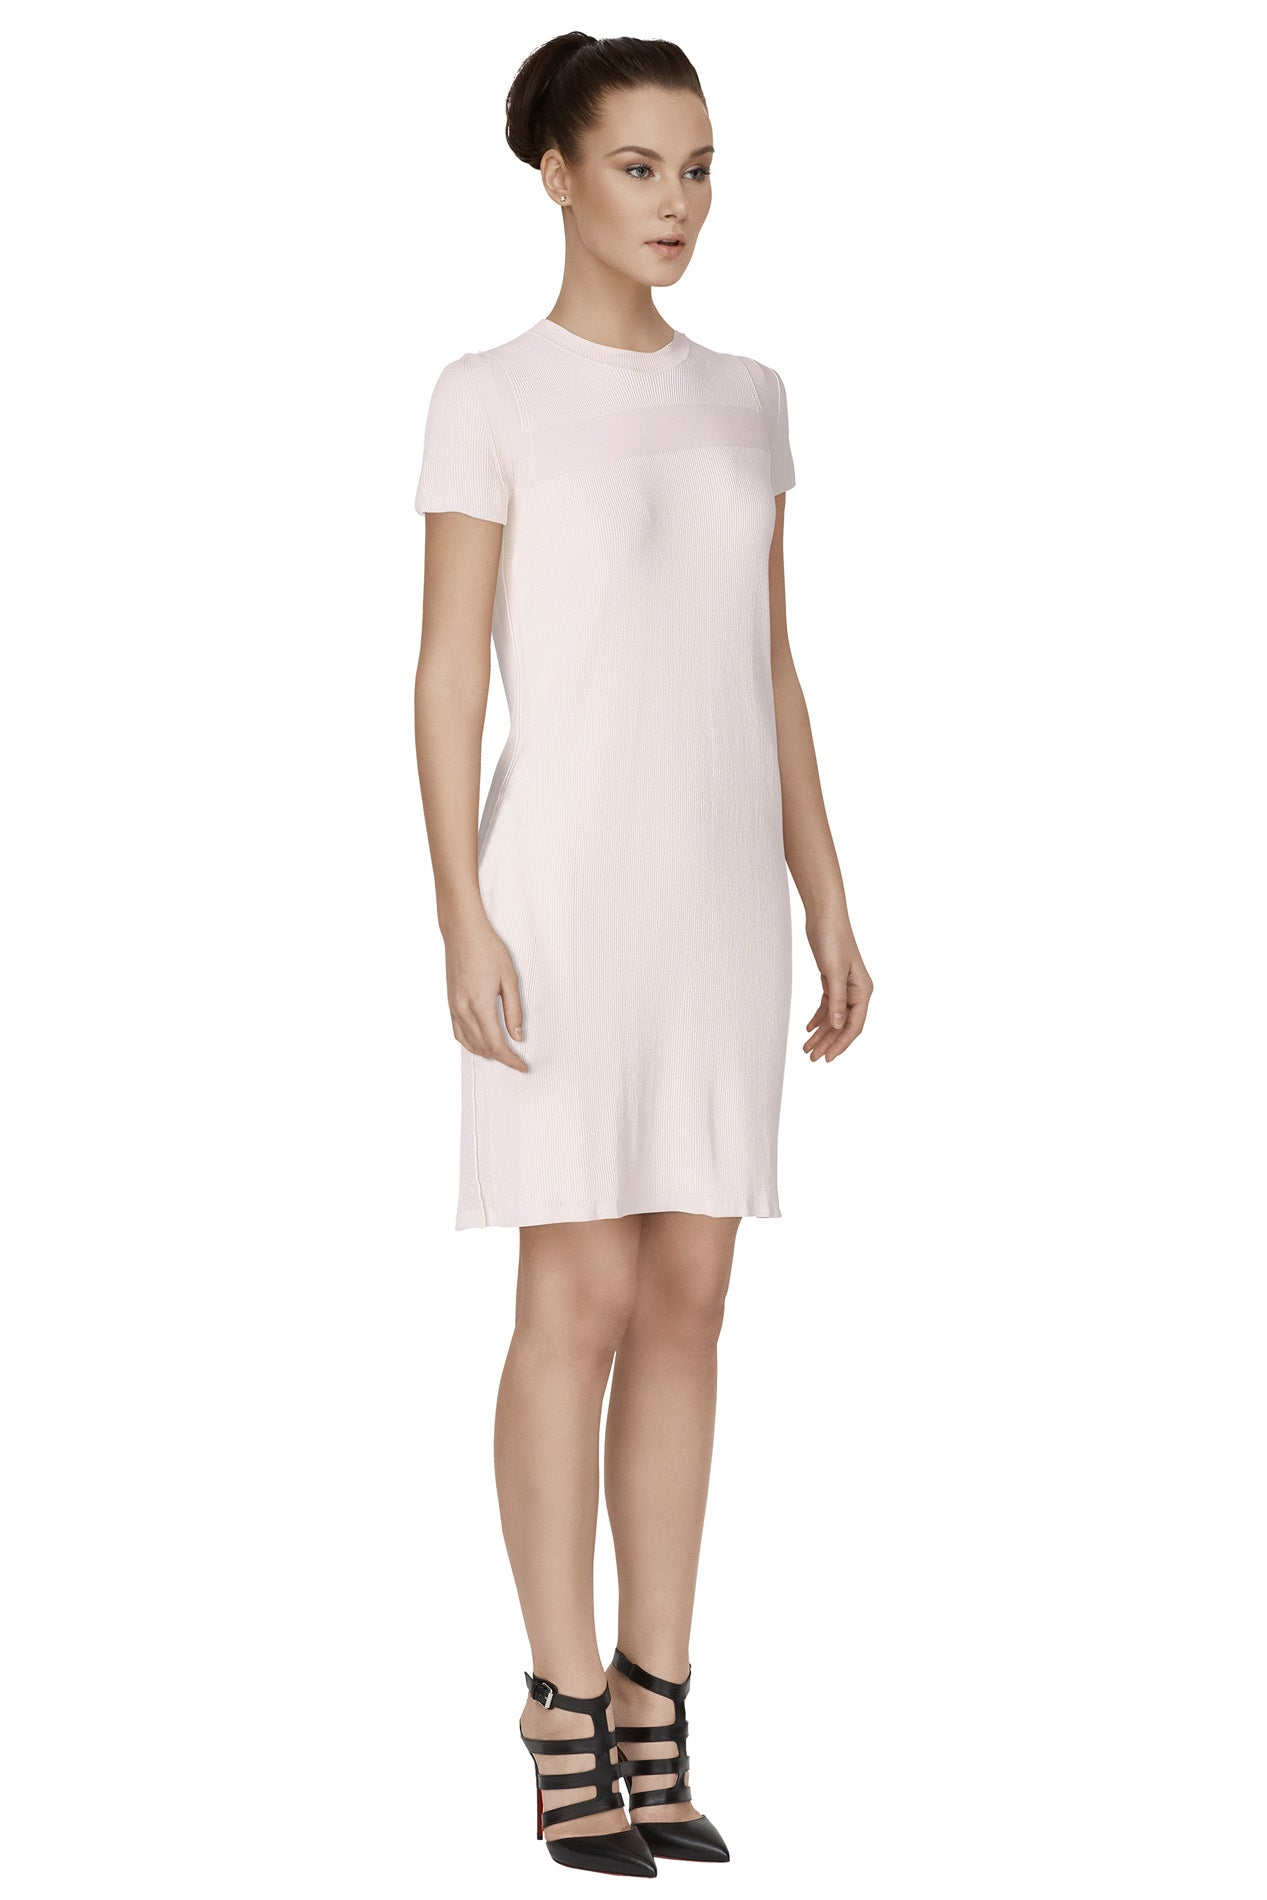 Short Sleeves Designer Dresses Alexander Wang Thefinds